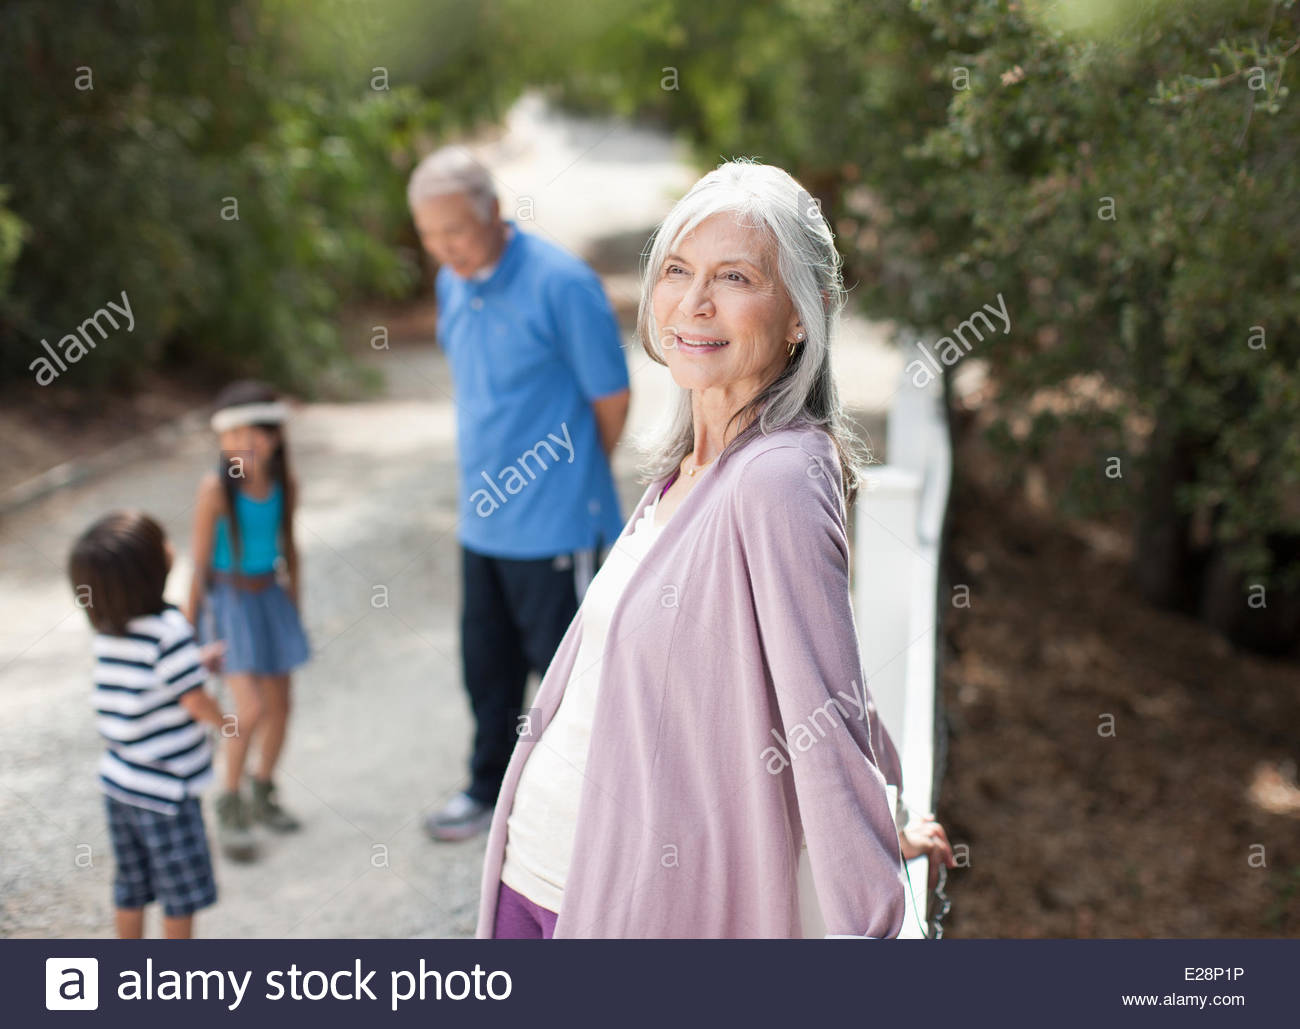 group older women smiling stock photos & group older women smiling